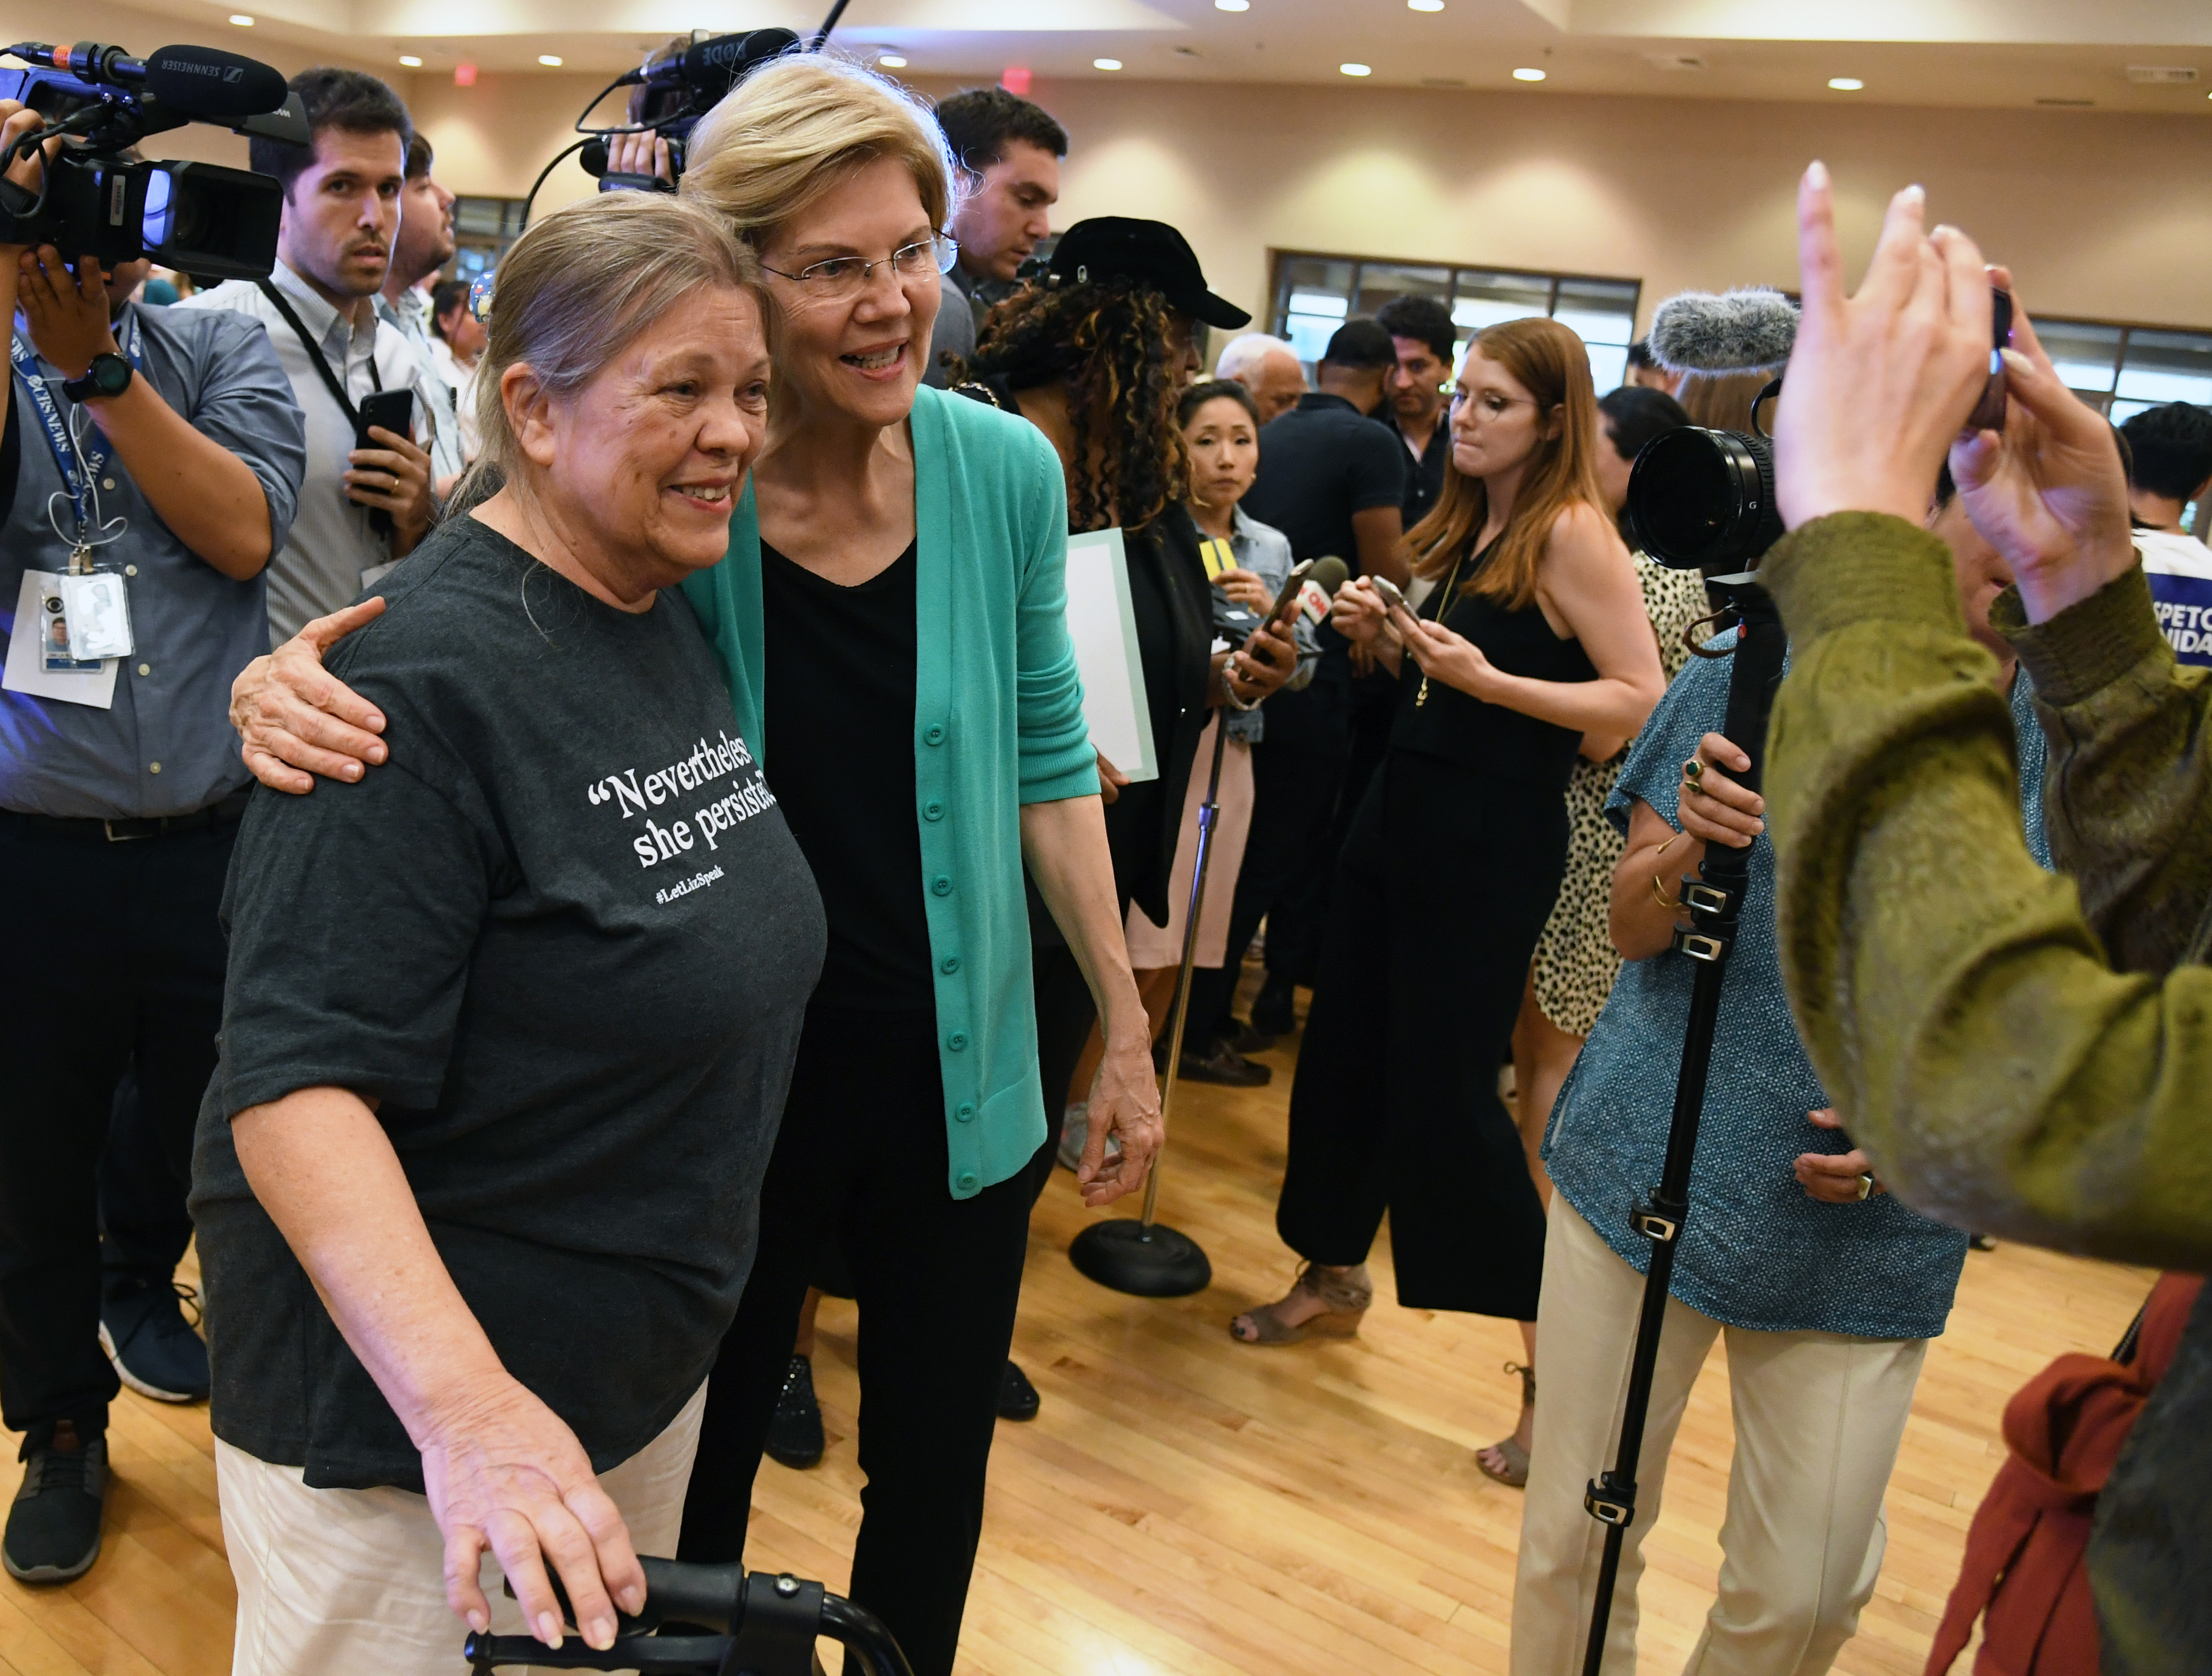 Marilyn Beilstein (L) of Nevada poses for a photo with Democratic presidential candidate U.S. Sen. Elizabeth Warren (D-MA) after she spoke at a community conversation at the East Las Vegas Community Center on July 2, 2019 in Las Vegas, Nevada. (Photo by Ethan Miller/Getty Images)